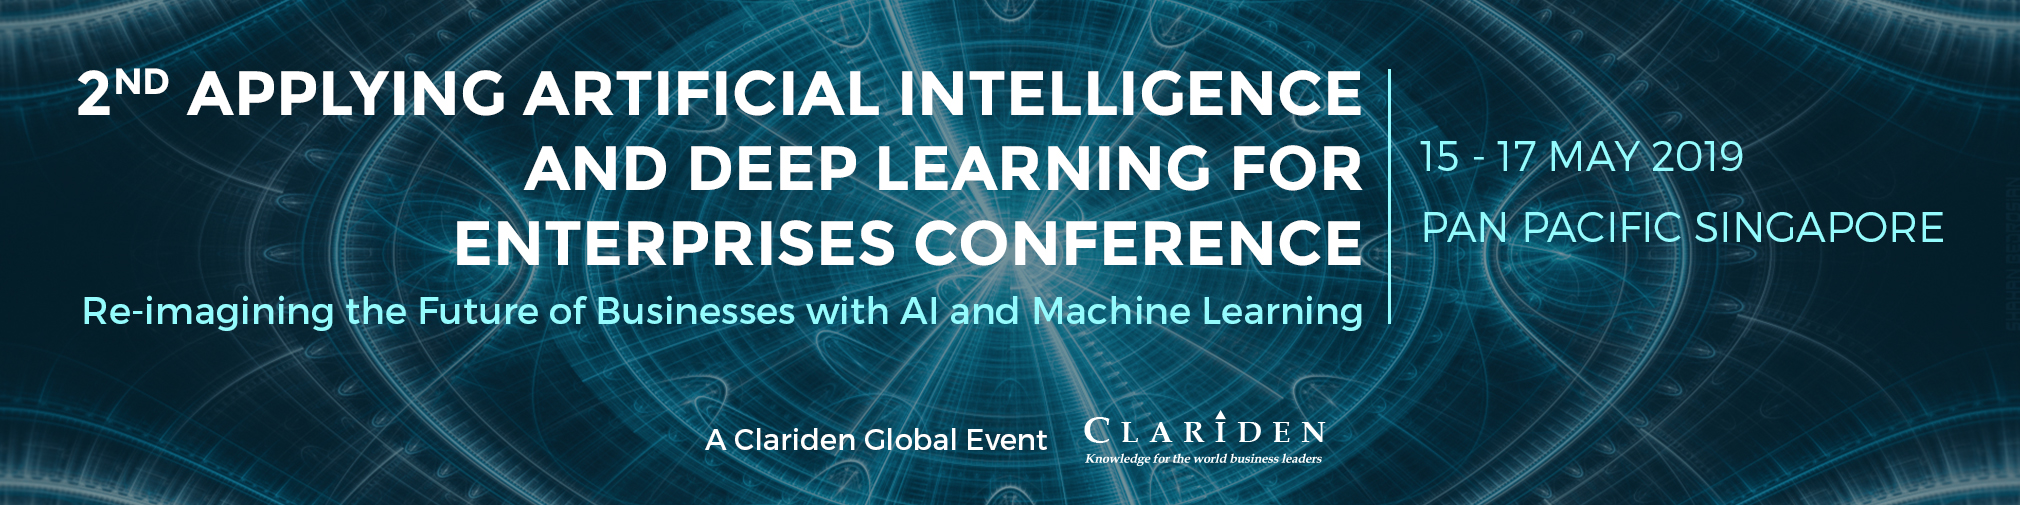 2nd Applying Artificial Intelligence and Deep Learning for